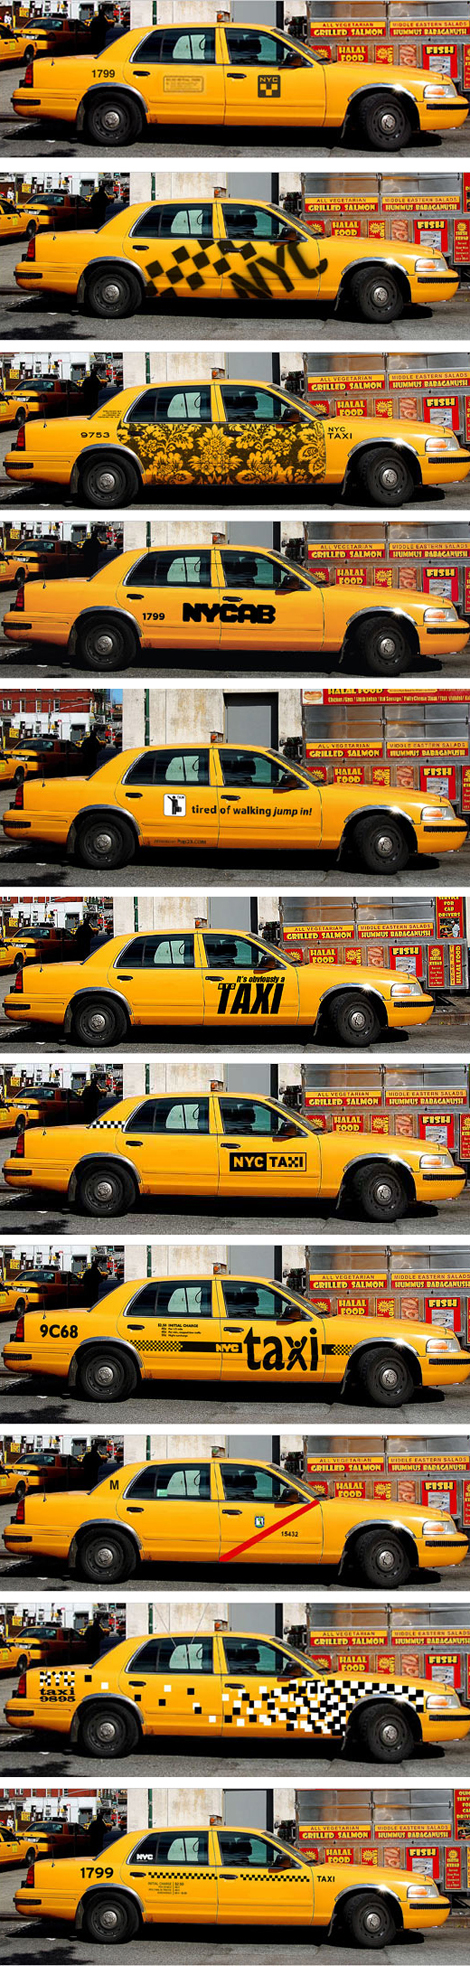 Nycabs